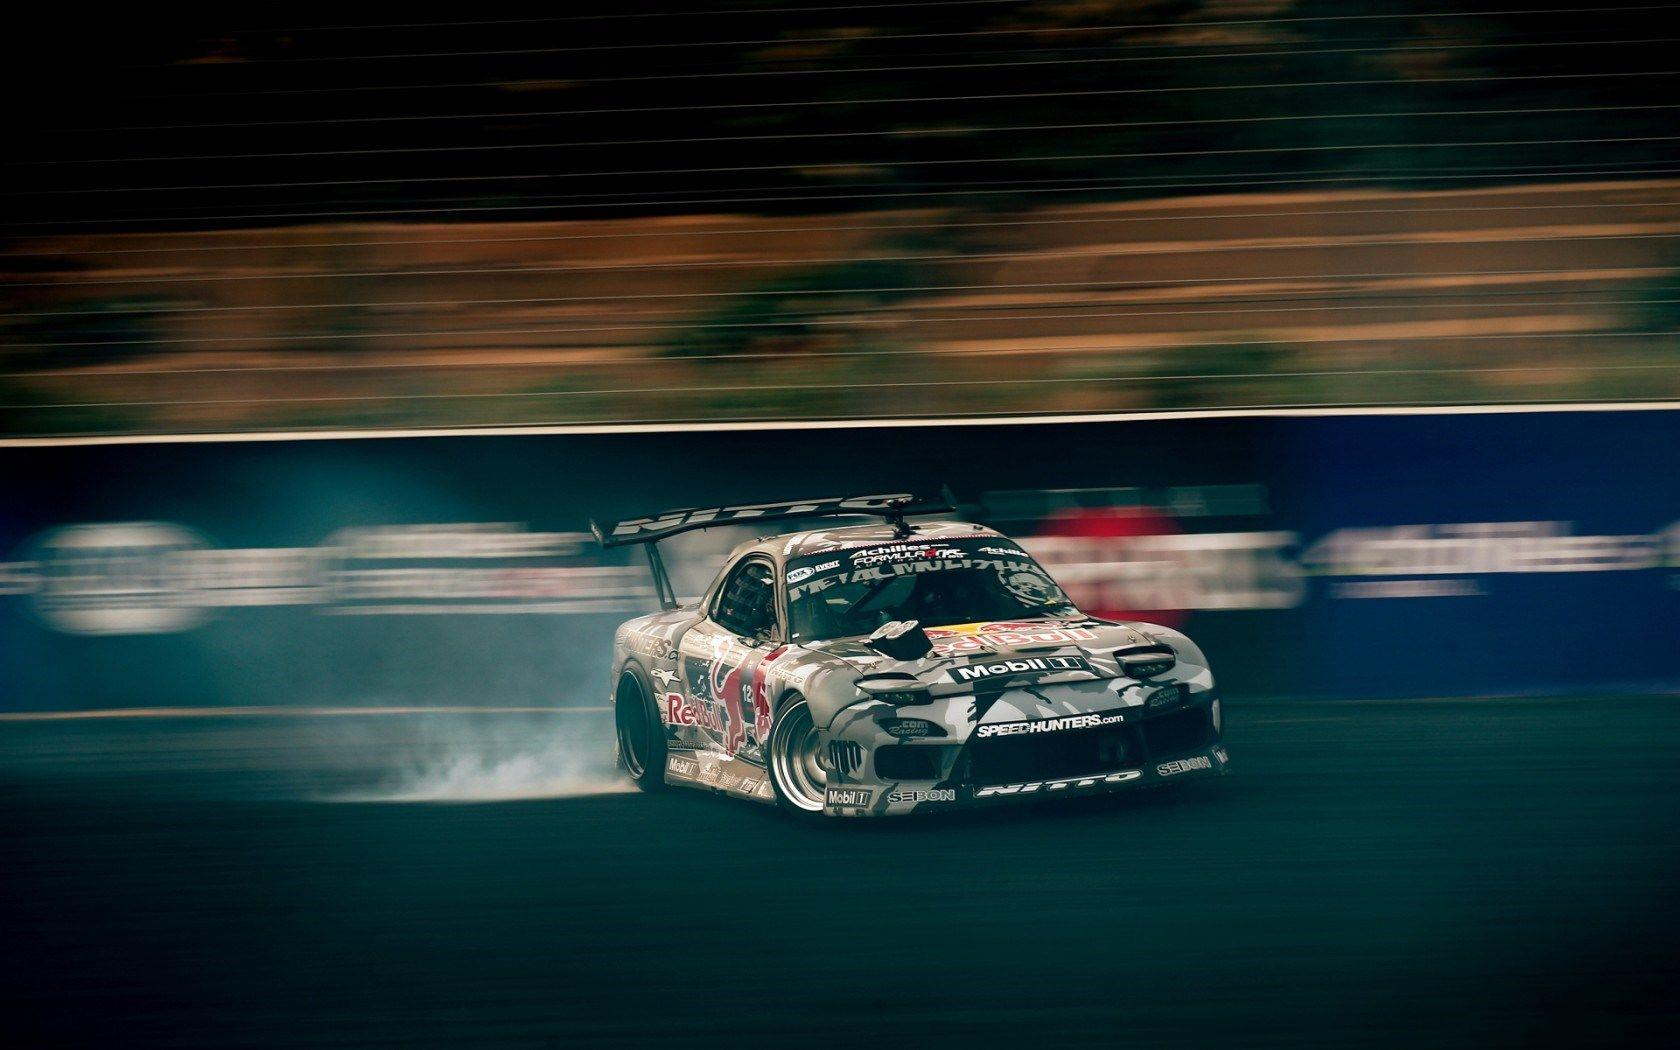 Cool Cars Drifting Wallpapers Hd Mazda Rx 7 Wallpapers Wallpaper Cave